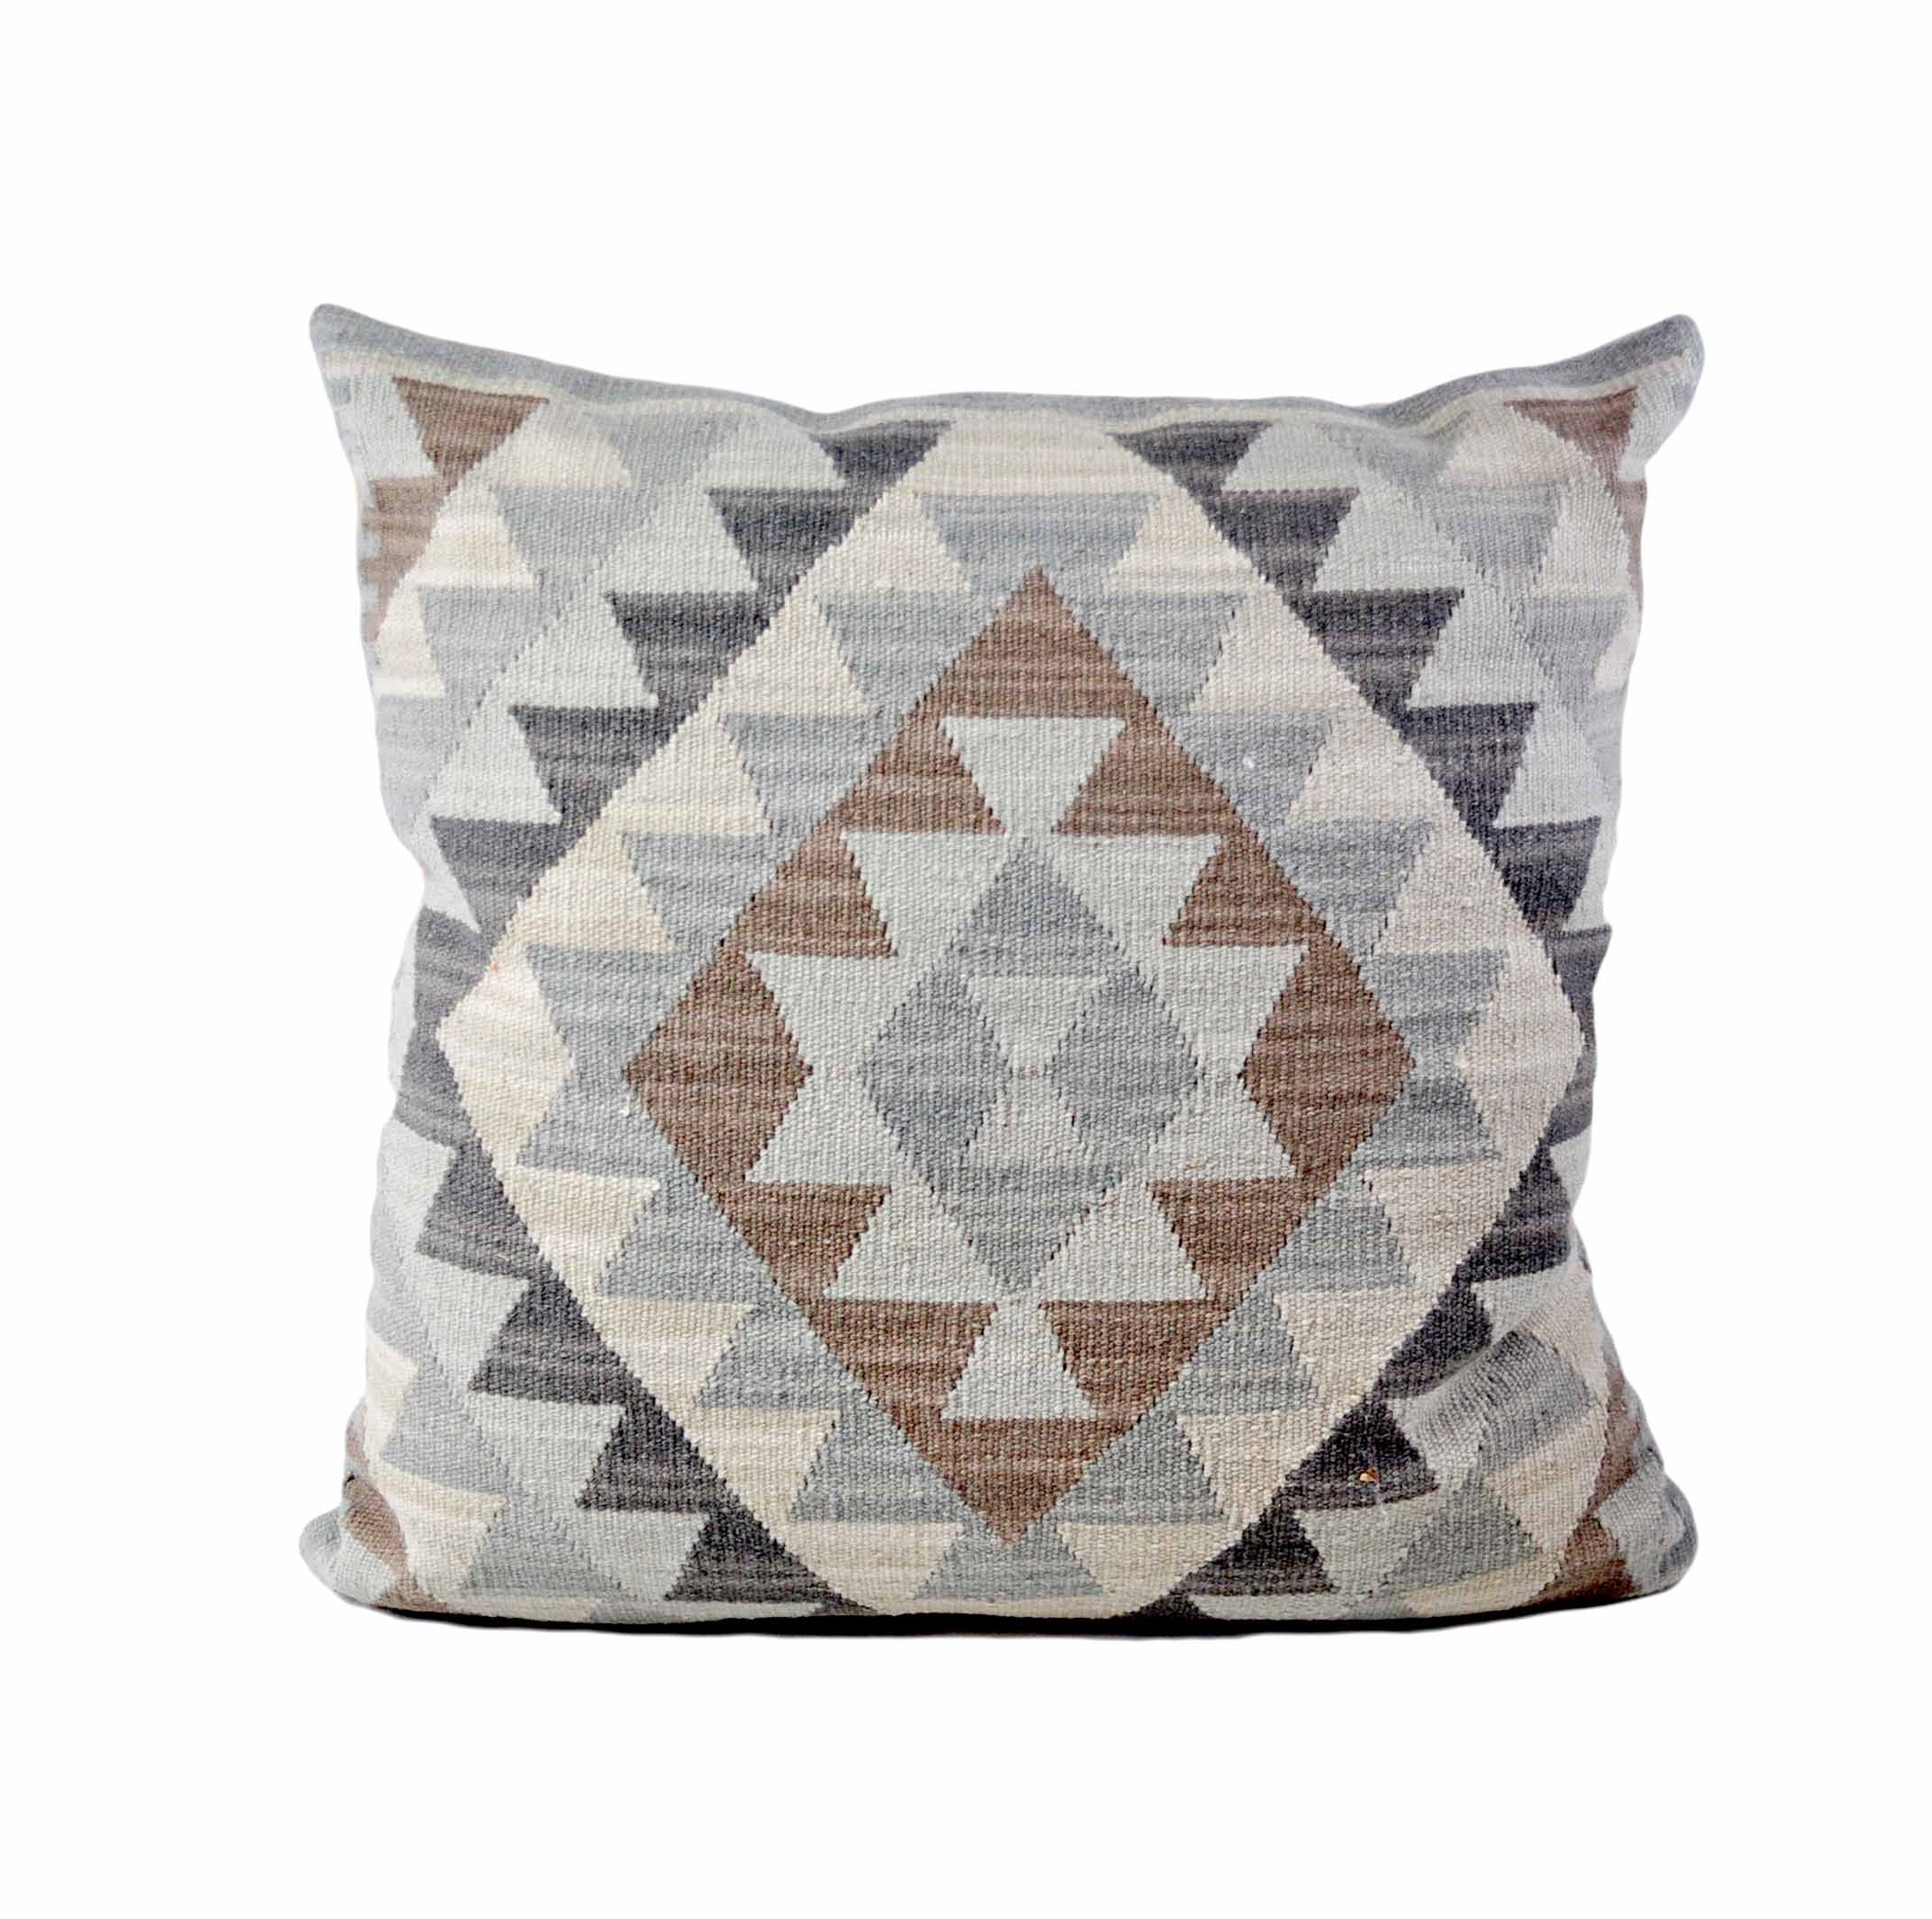 24×24 Hand-woven Wool Kilim Pillow Cover 12981029